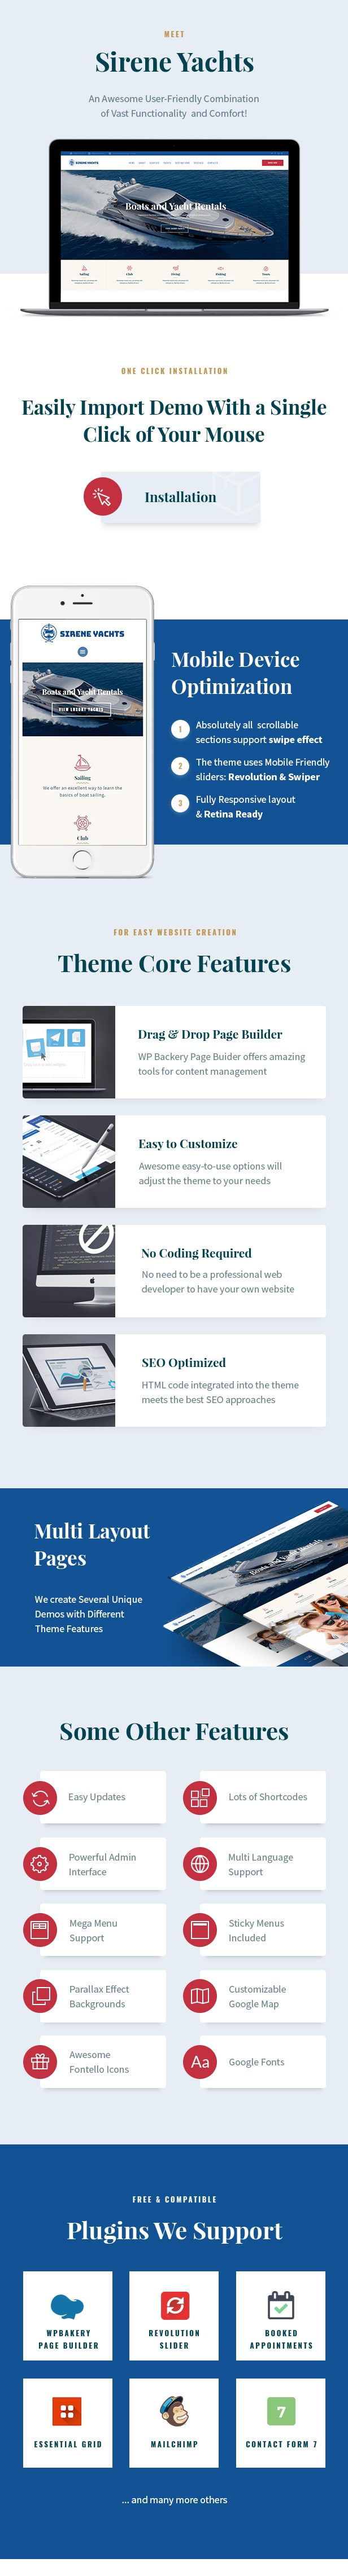 Yacht Charter Services & Boat Rental WordPress Theme features